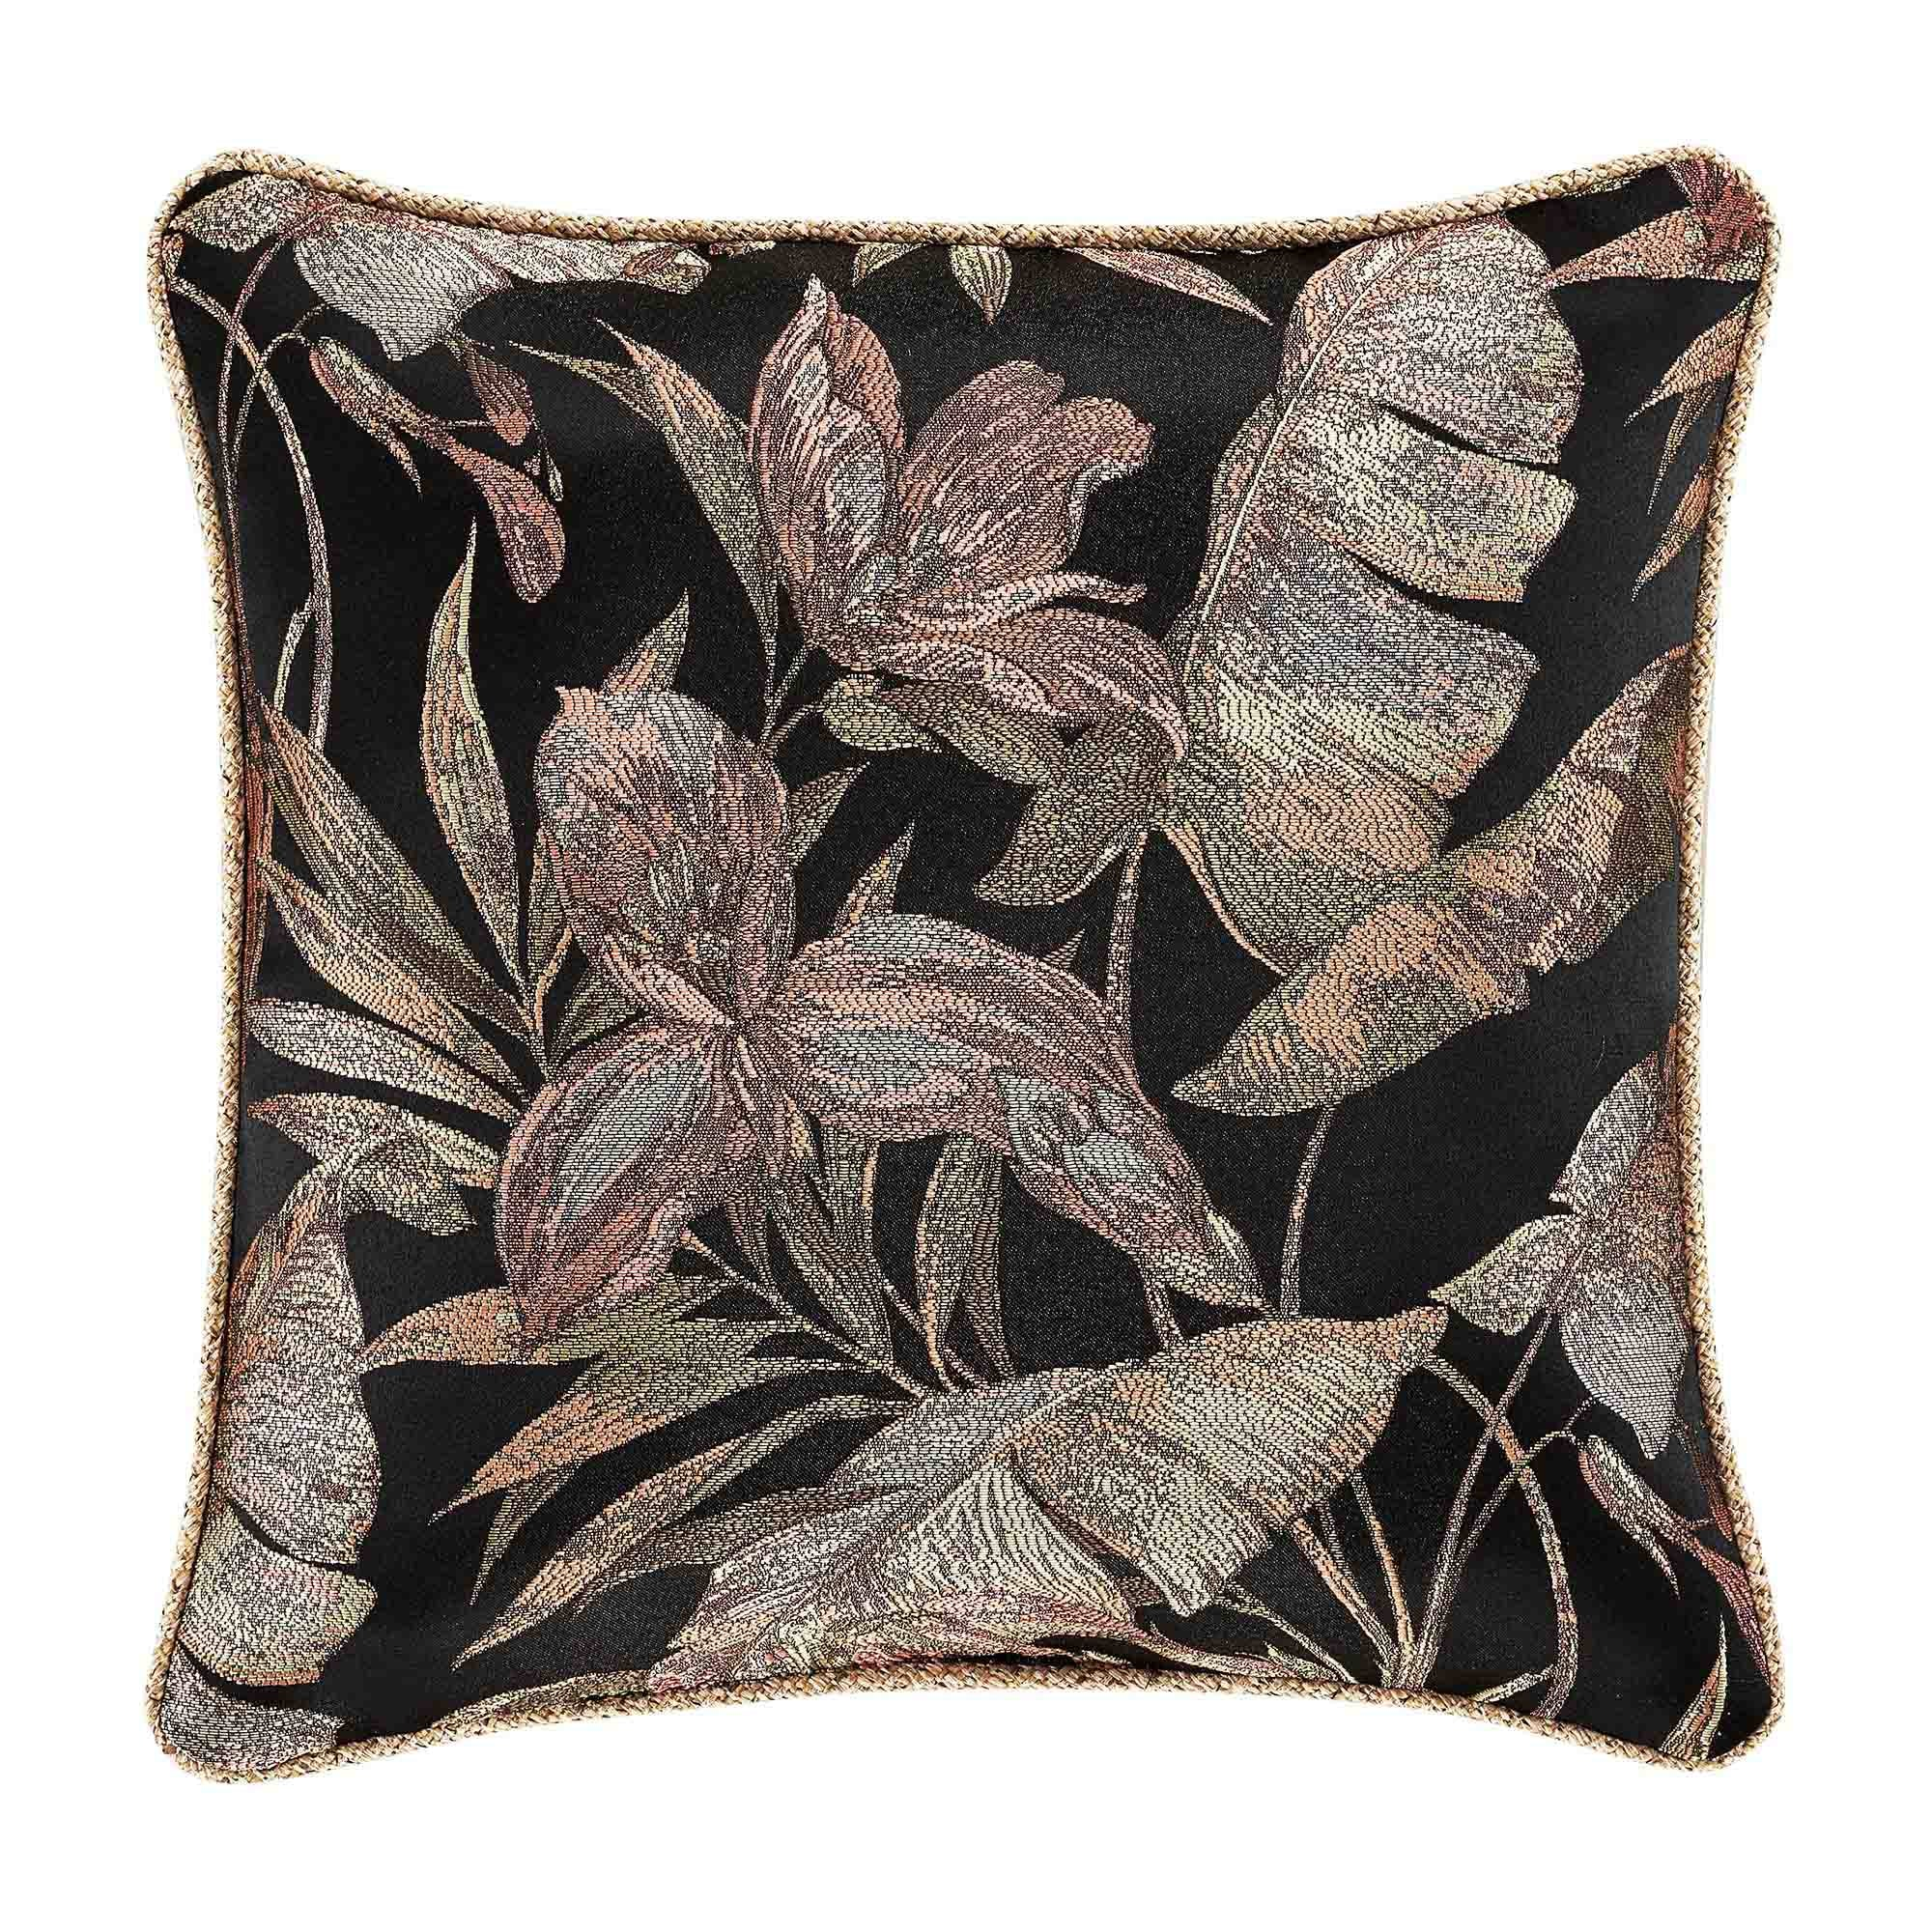 "Martinique Black Square Decorative Throw Pillow 20"" x 20"" Throw Pillows By J. Queen New York"